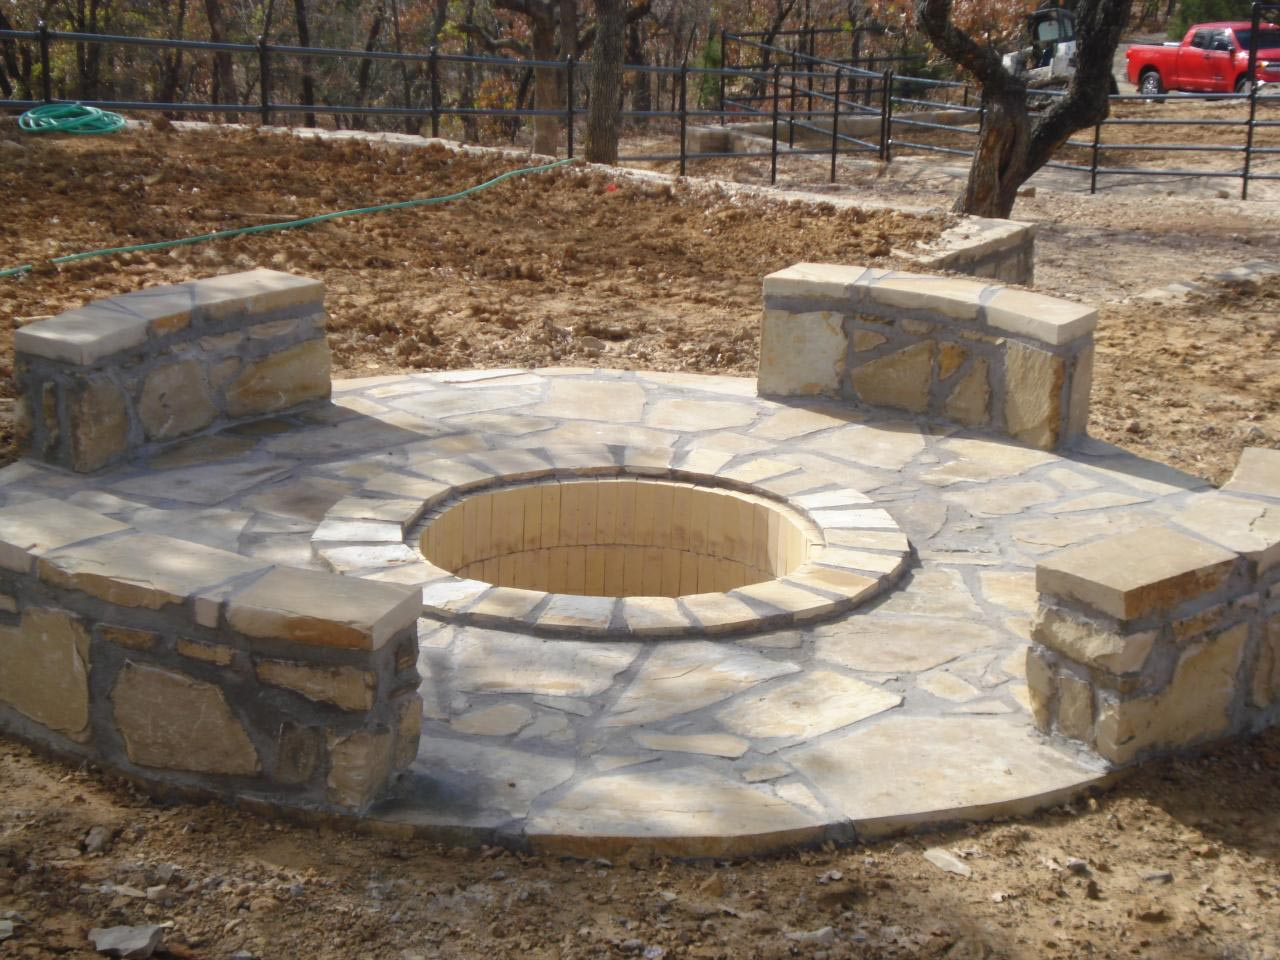 Cinder block fire pit plans fire pit design ideas for How to build a fire pit with concrete blocks